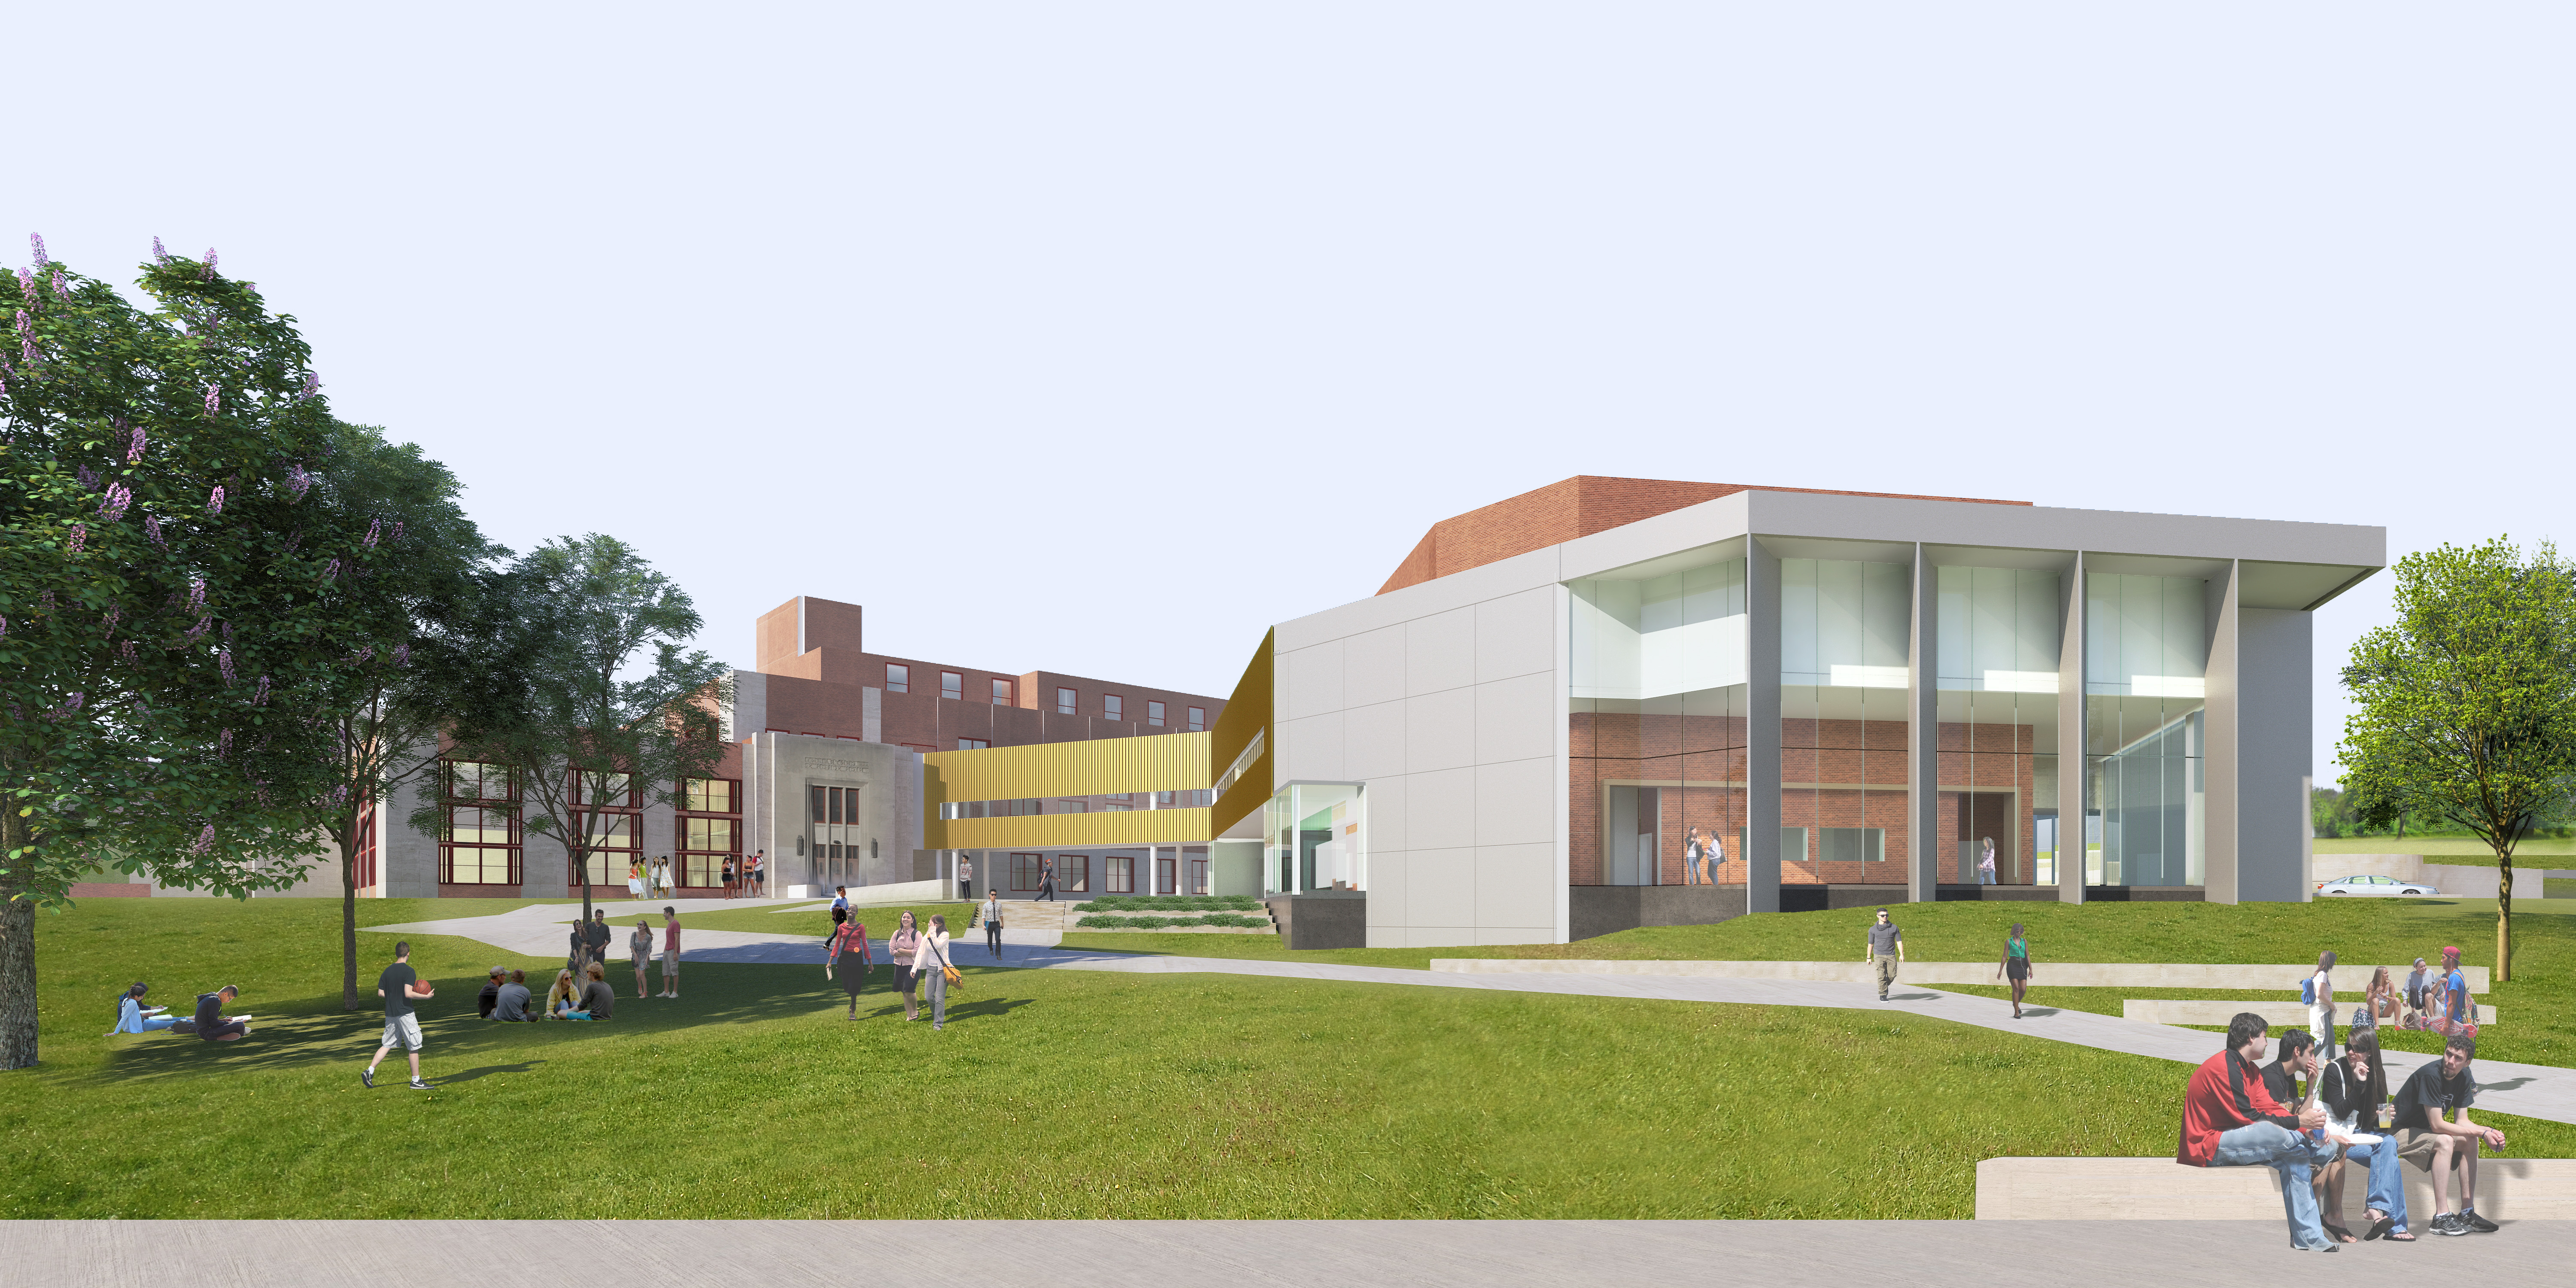 An artist´s rendering of a planned expansion to Philadelphia´s Central High School